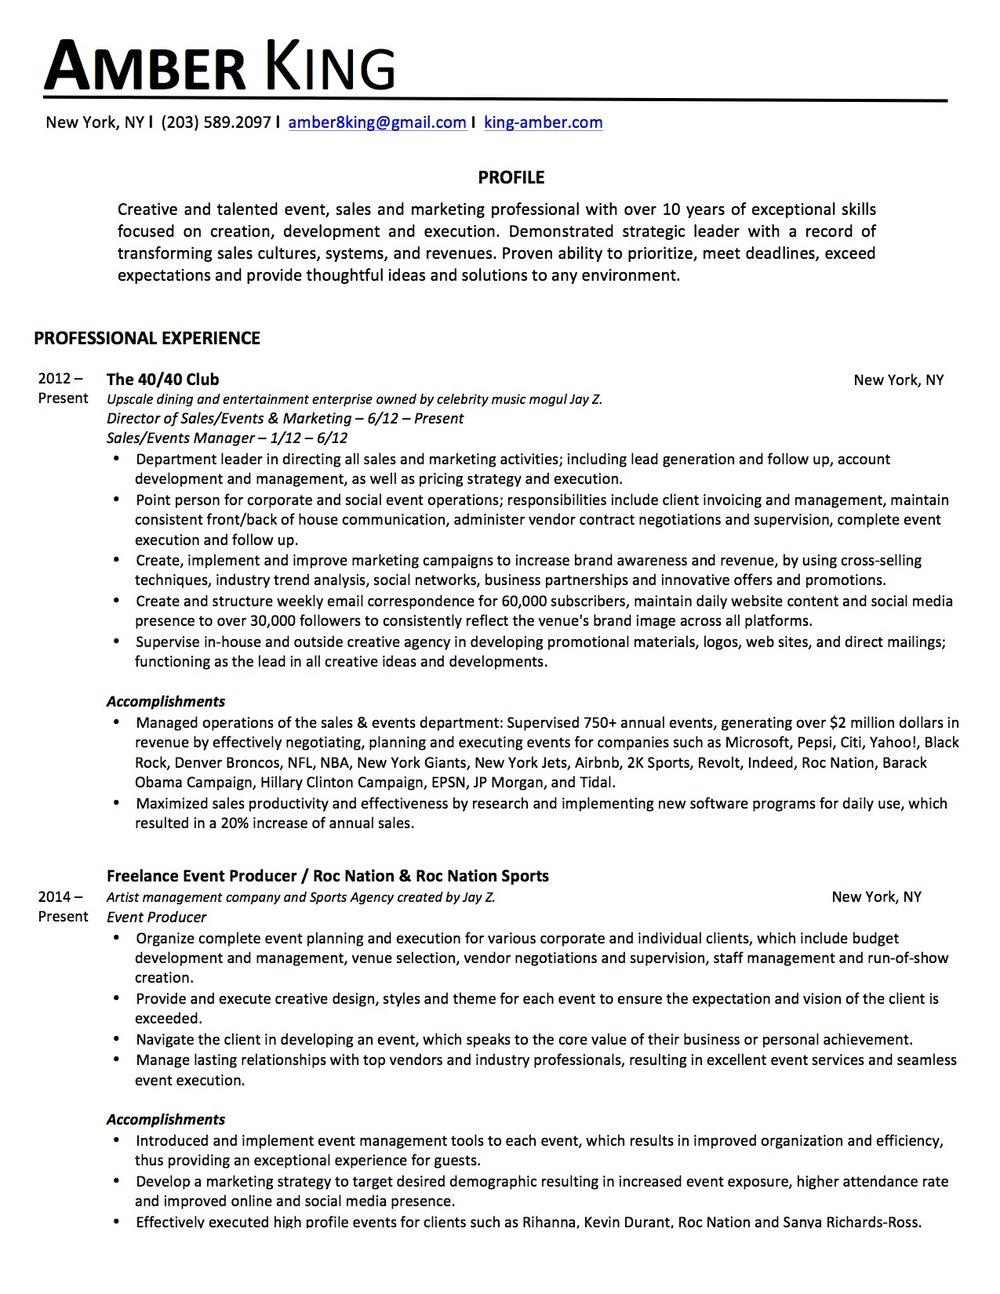 amber king resume 2017_page_1jpg - Resume Improved